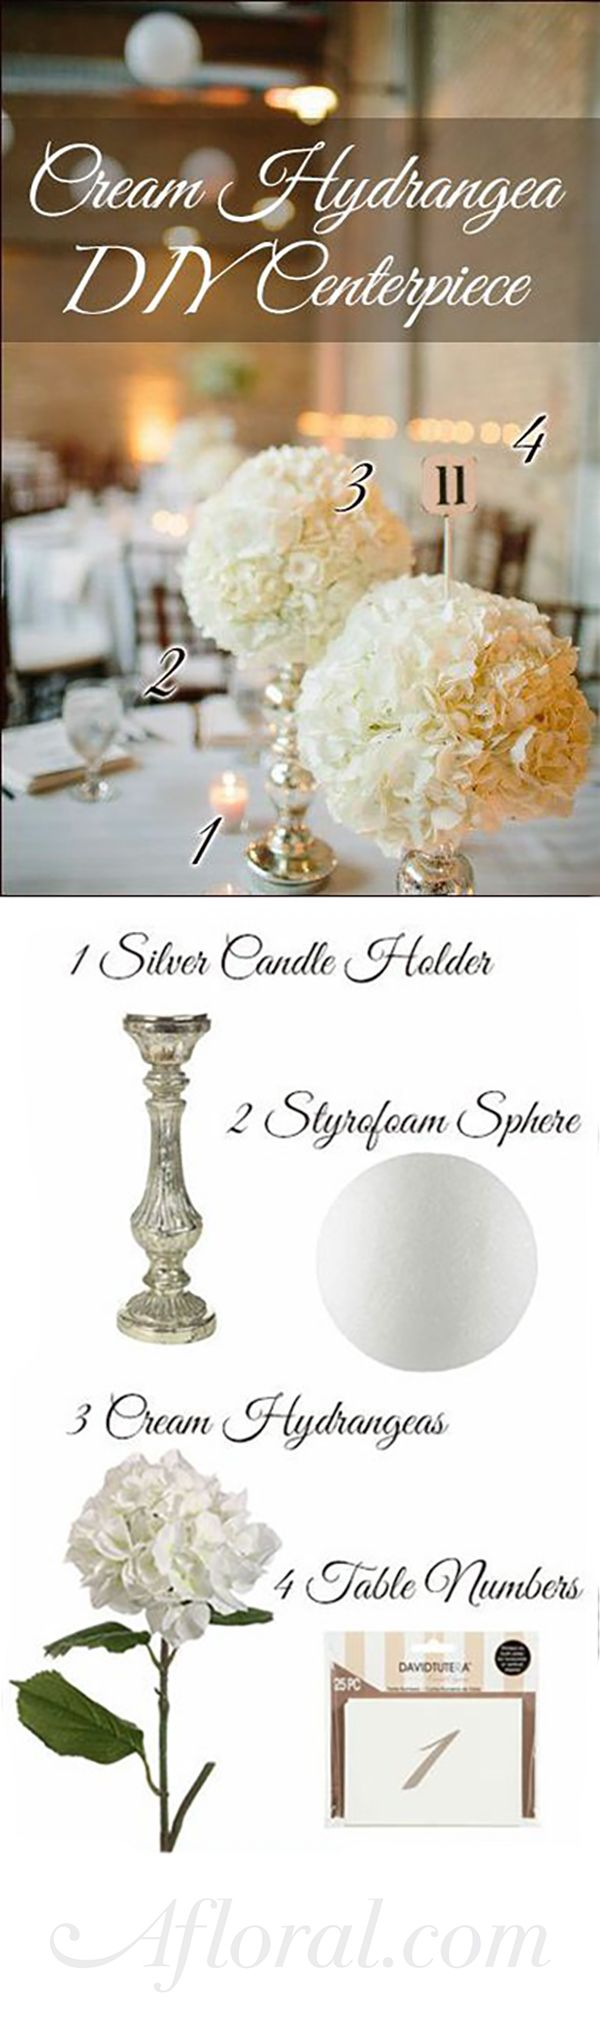 make your own wedding table decorations diy hydrangea centerpiece ideas for your wedding reception 5649